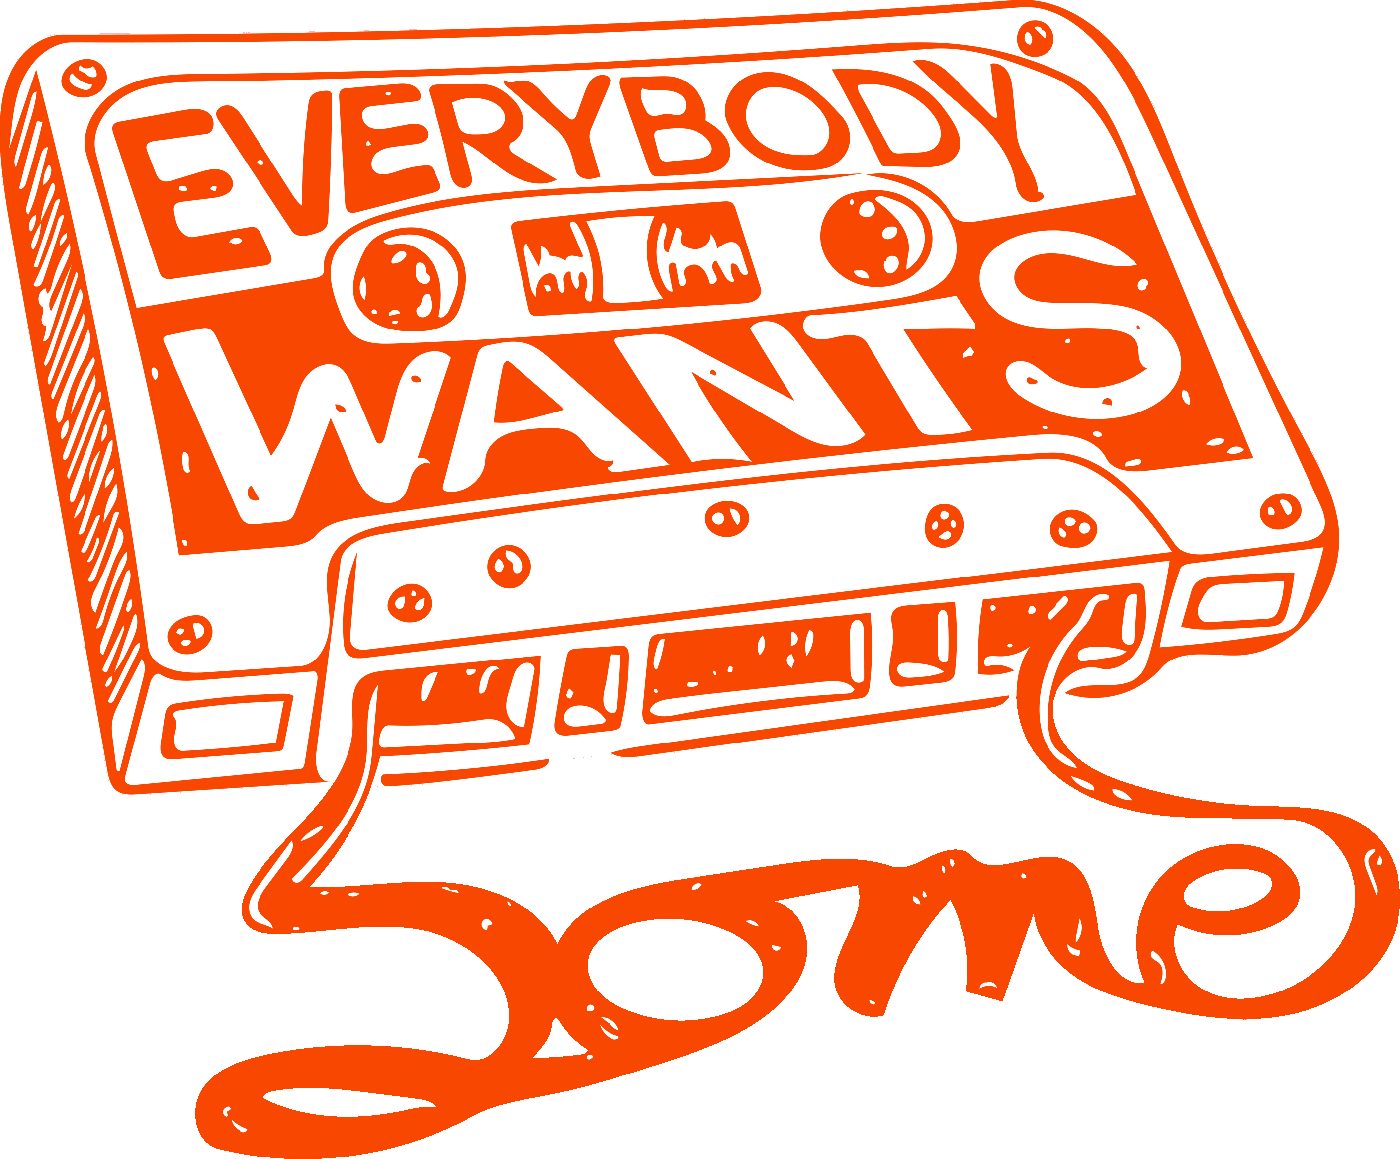 Everybody wants some the. Confused clipart dazed and confused